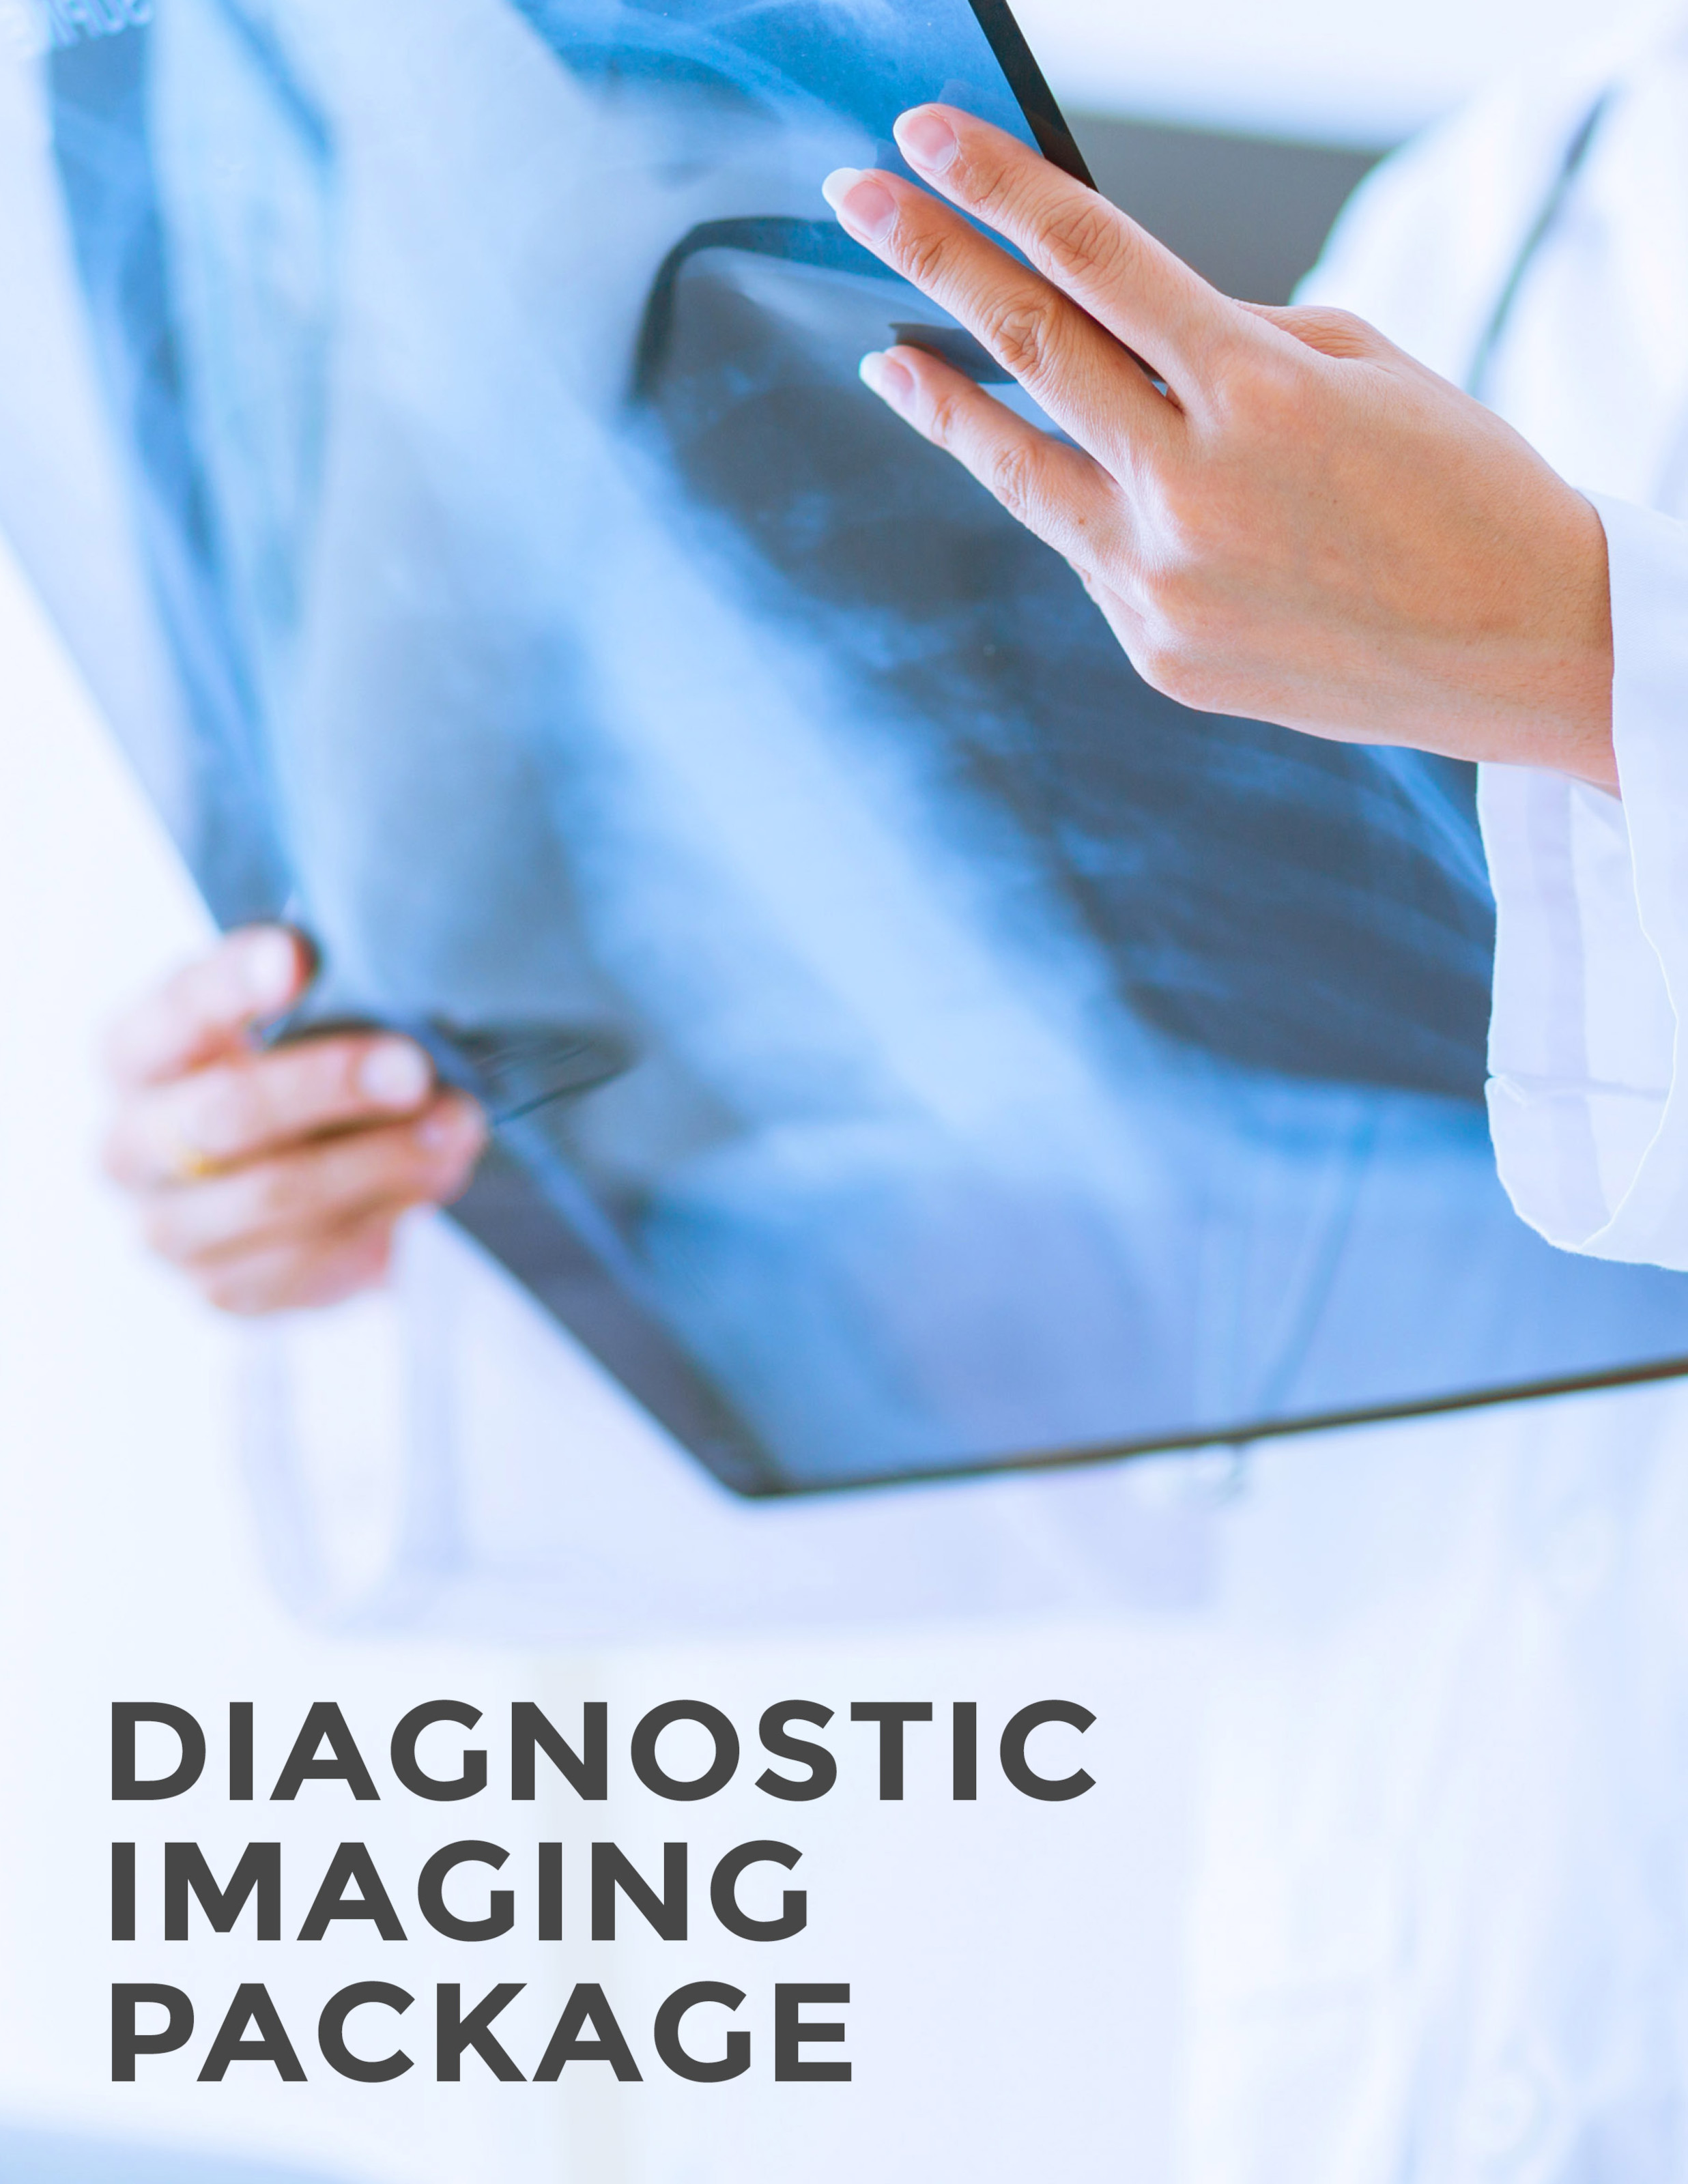 Diagnostic Imaging Package